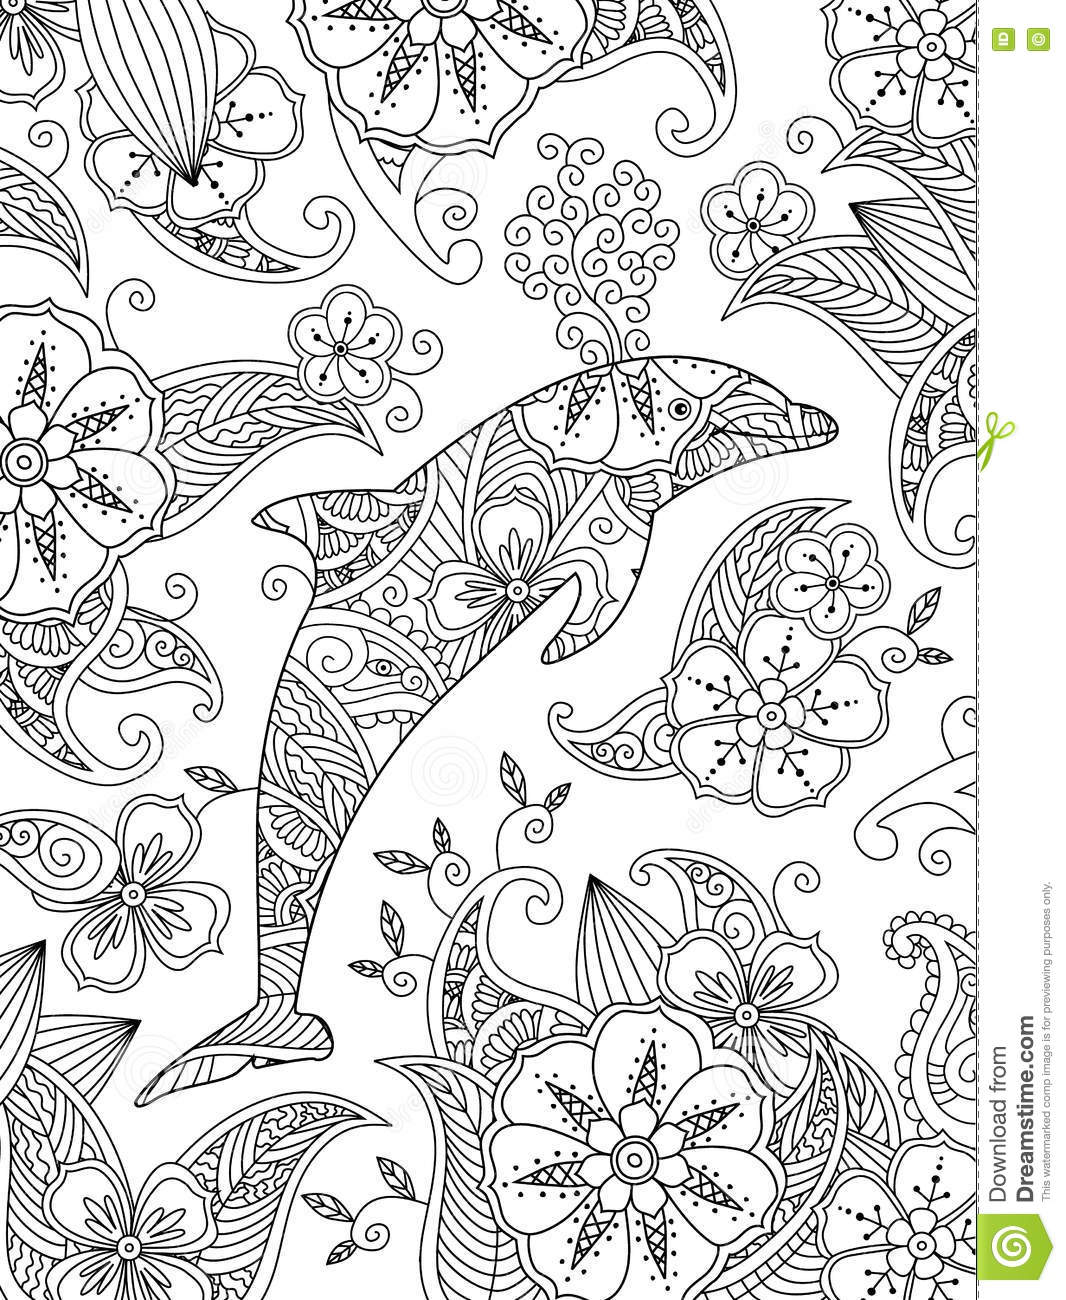 coloring page with one jumping dolphin on floral background stock